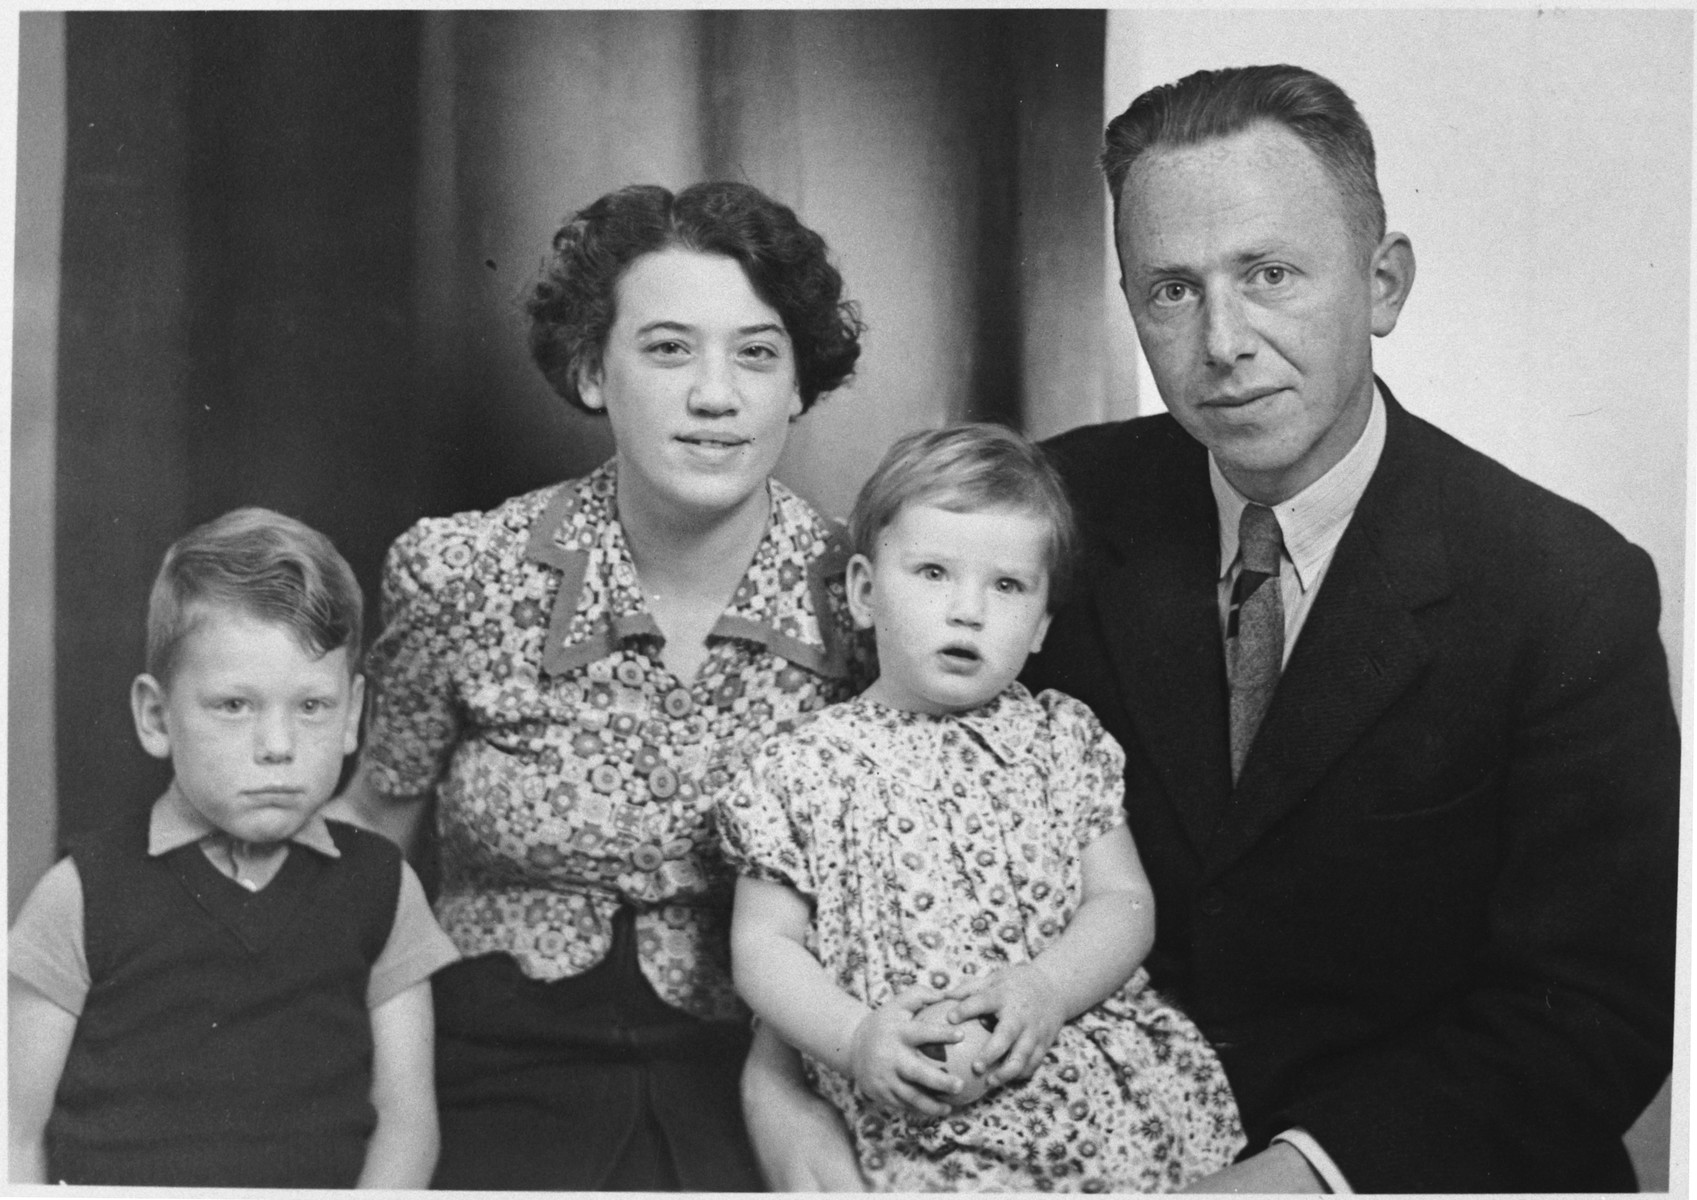 Studio portrait of a Dutch Jewish family taken either right before or right after the German invasion of the Netherlands.  Pictured are Max, mother, Miep and Bernard van Engel.